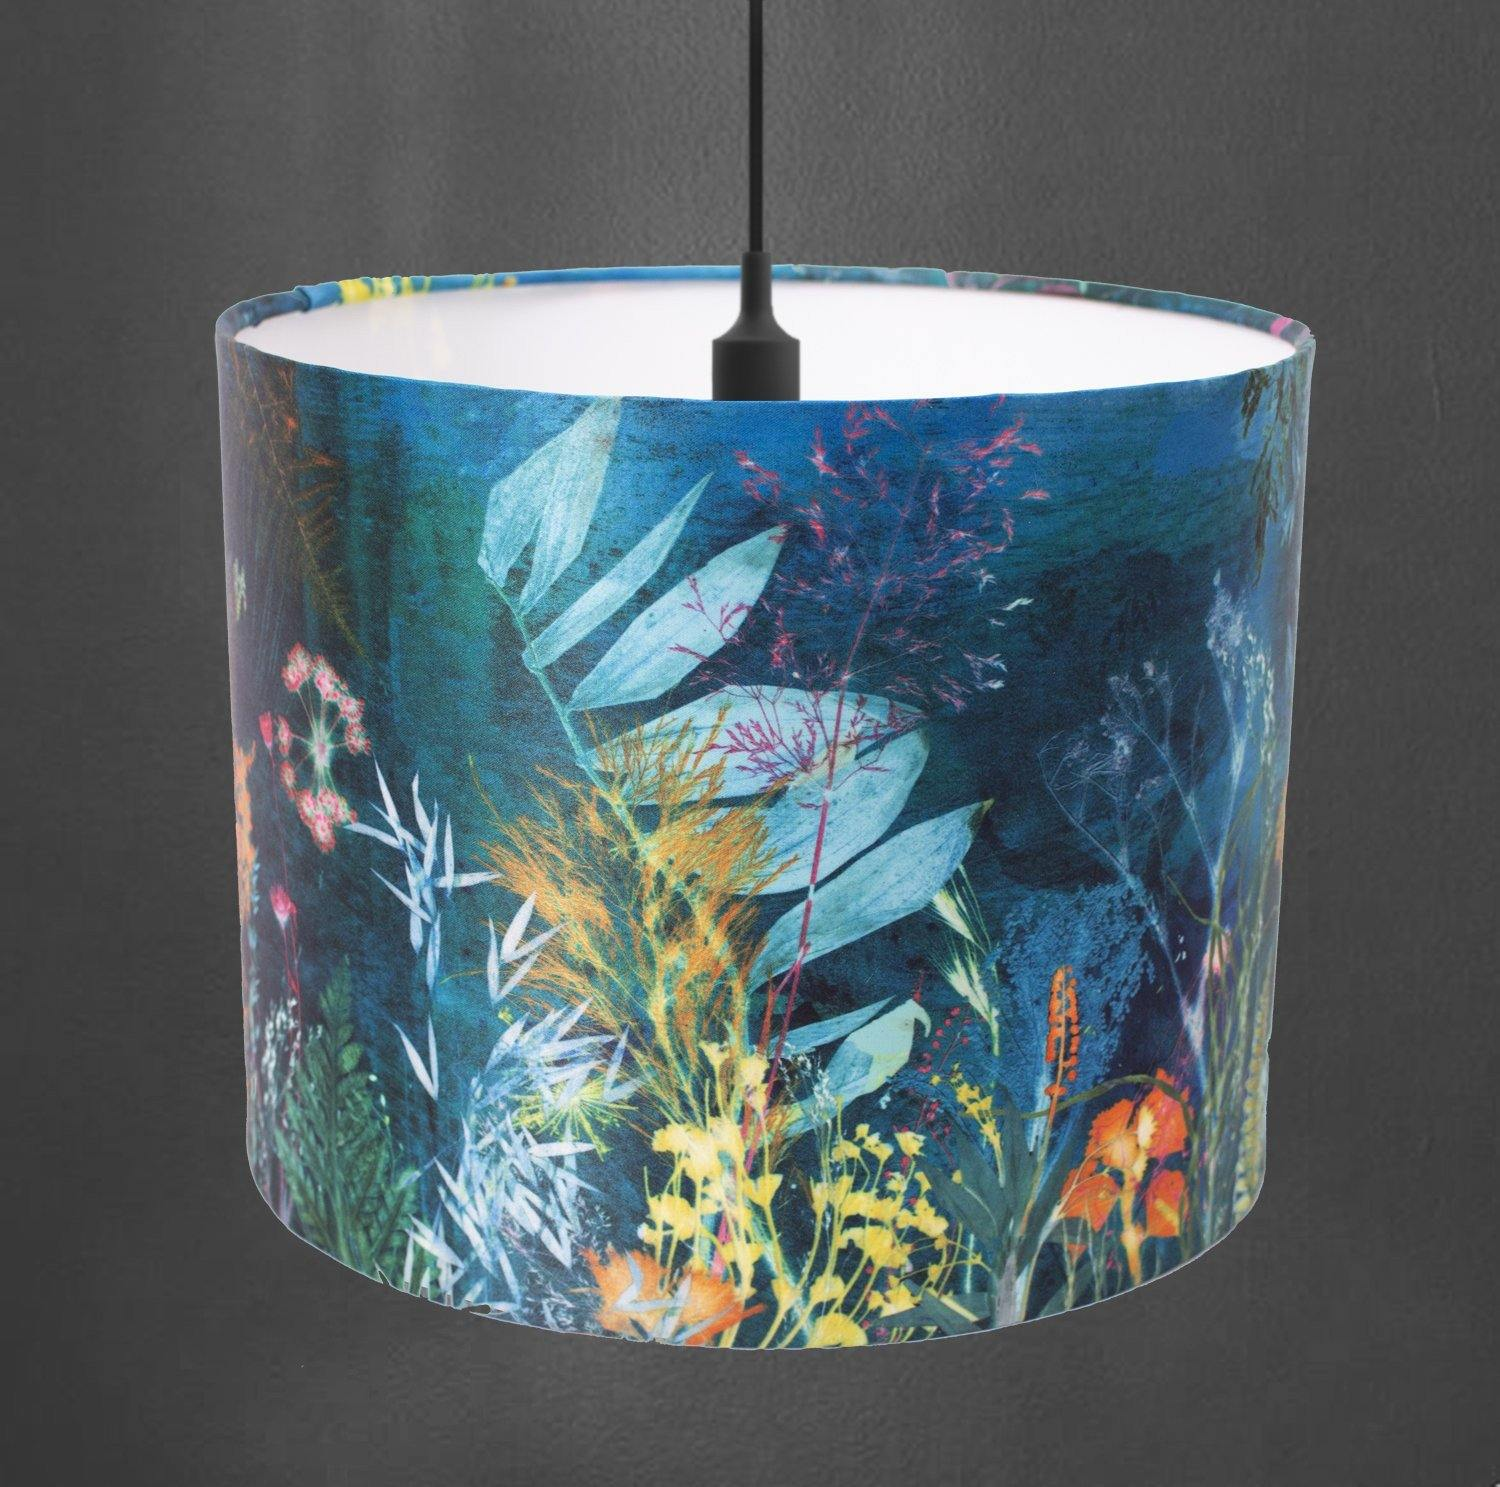 Aqua Magna 30cm Pendant Lampshade, Clothing & Accessories by Insideout